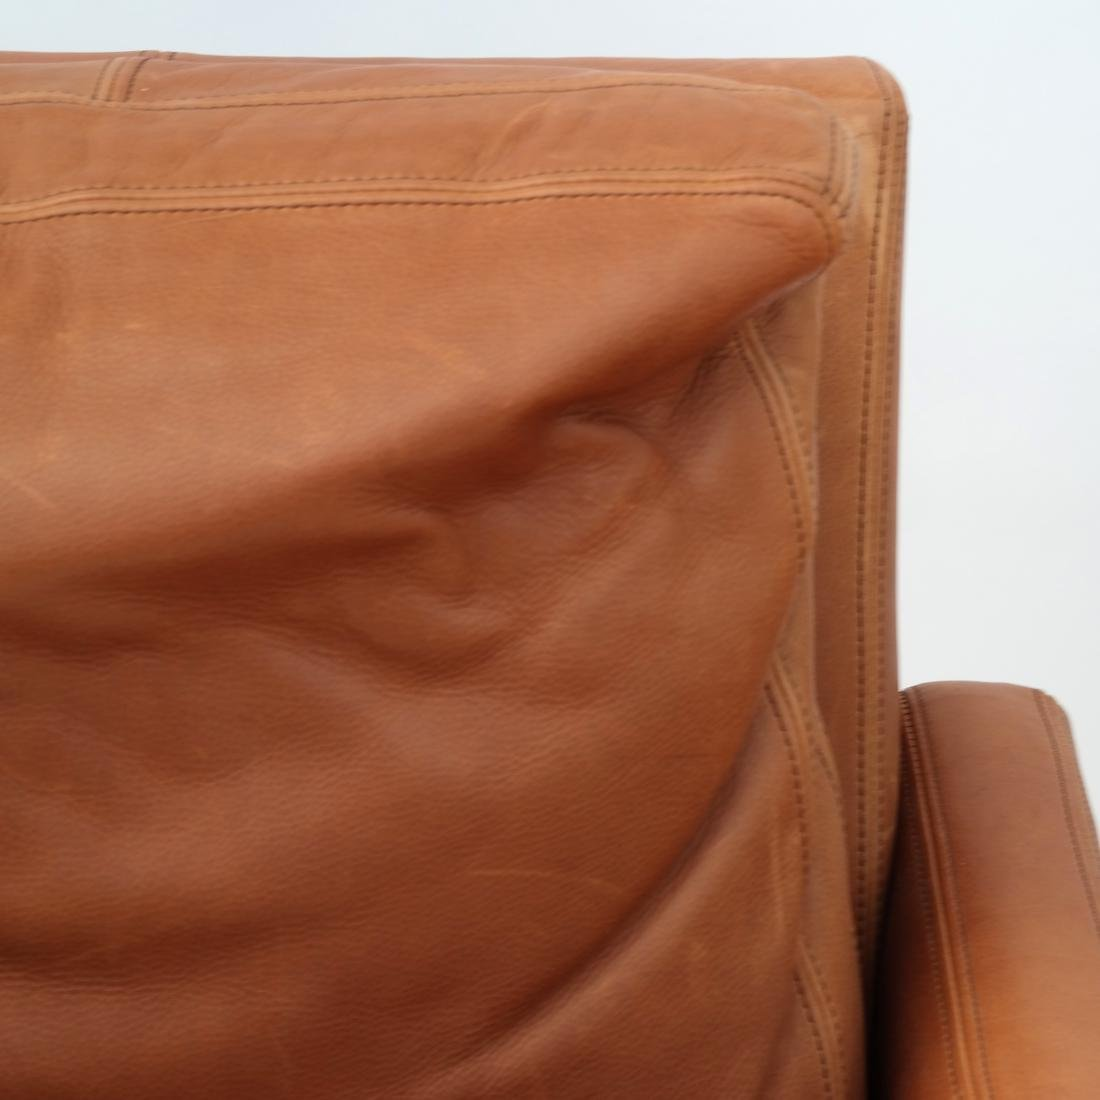 Pair Reclining Leather Club Chairs - 3